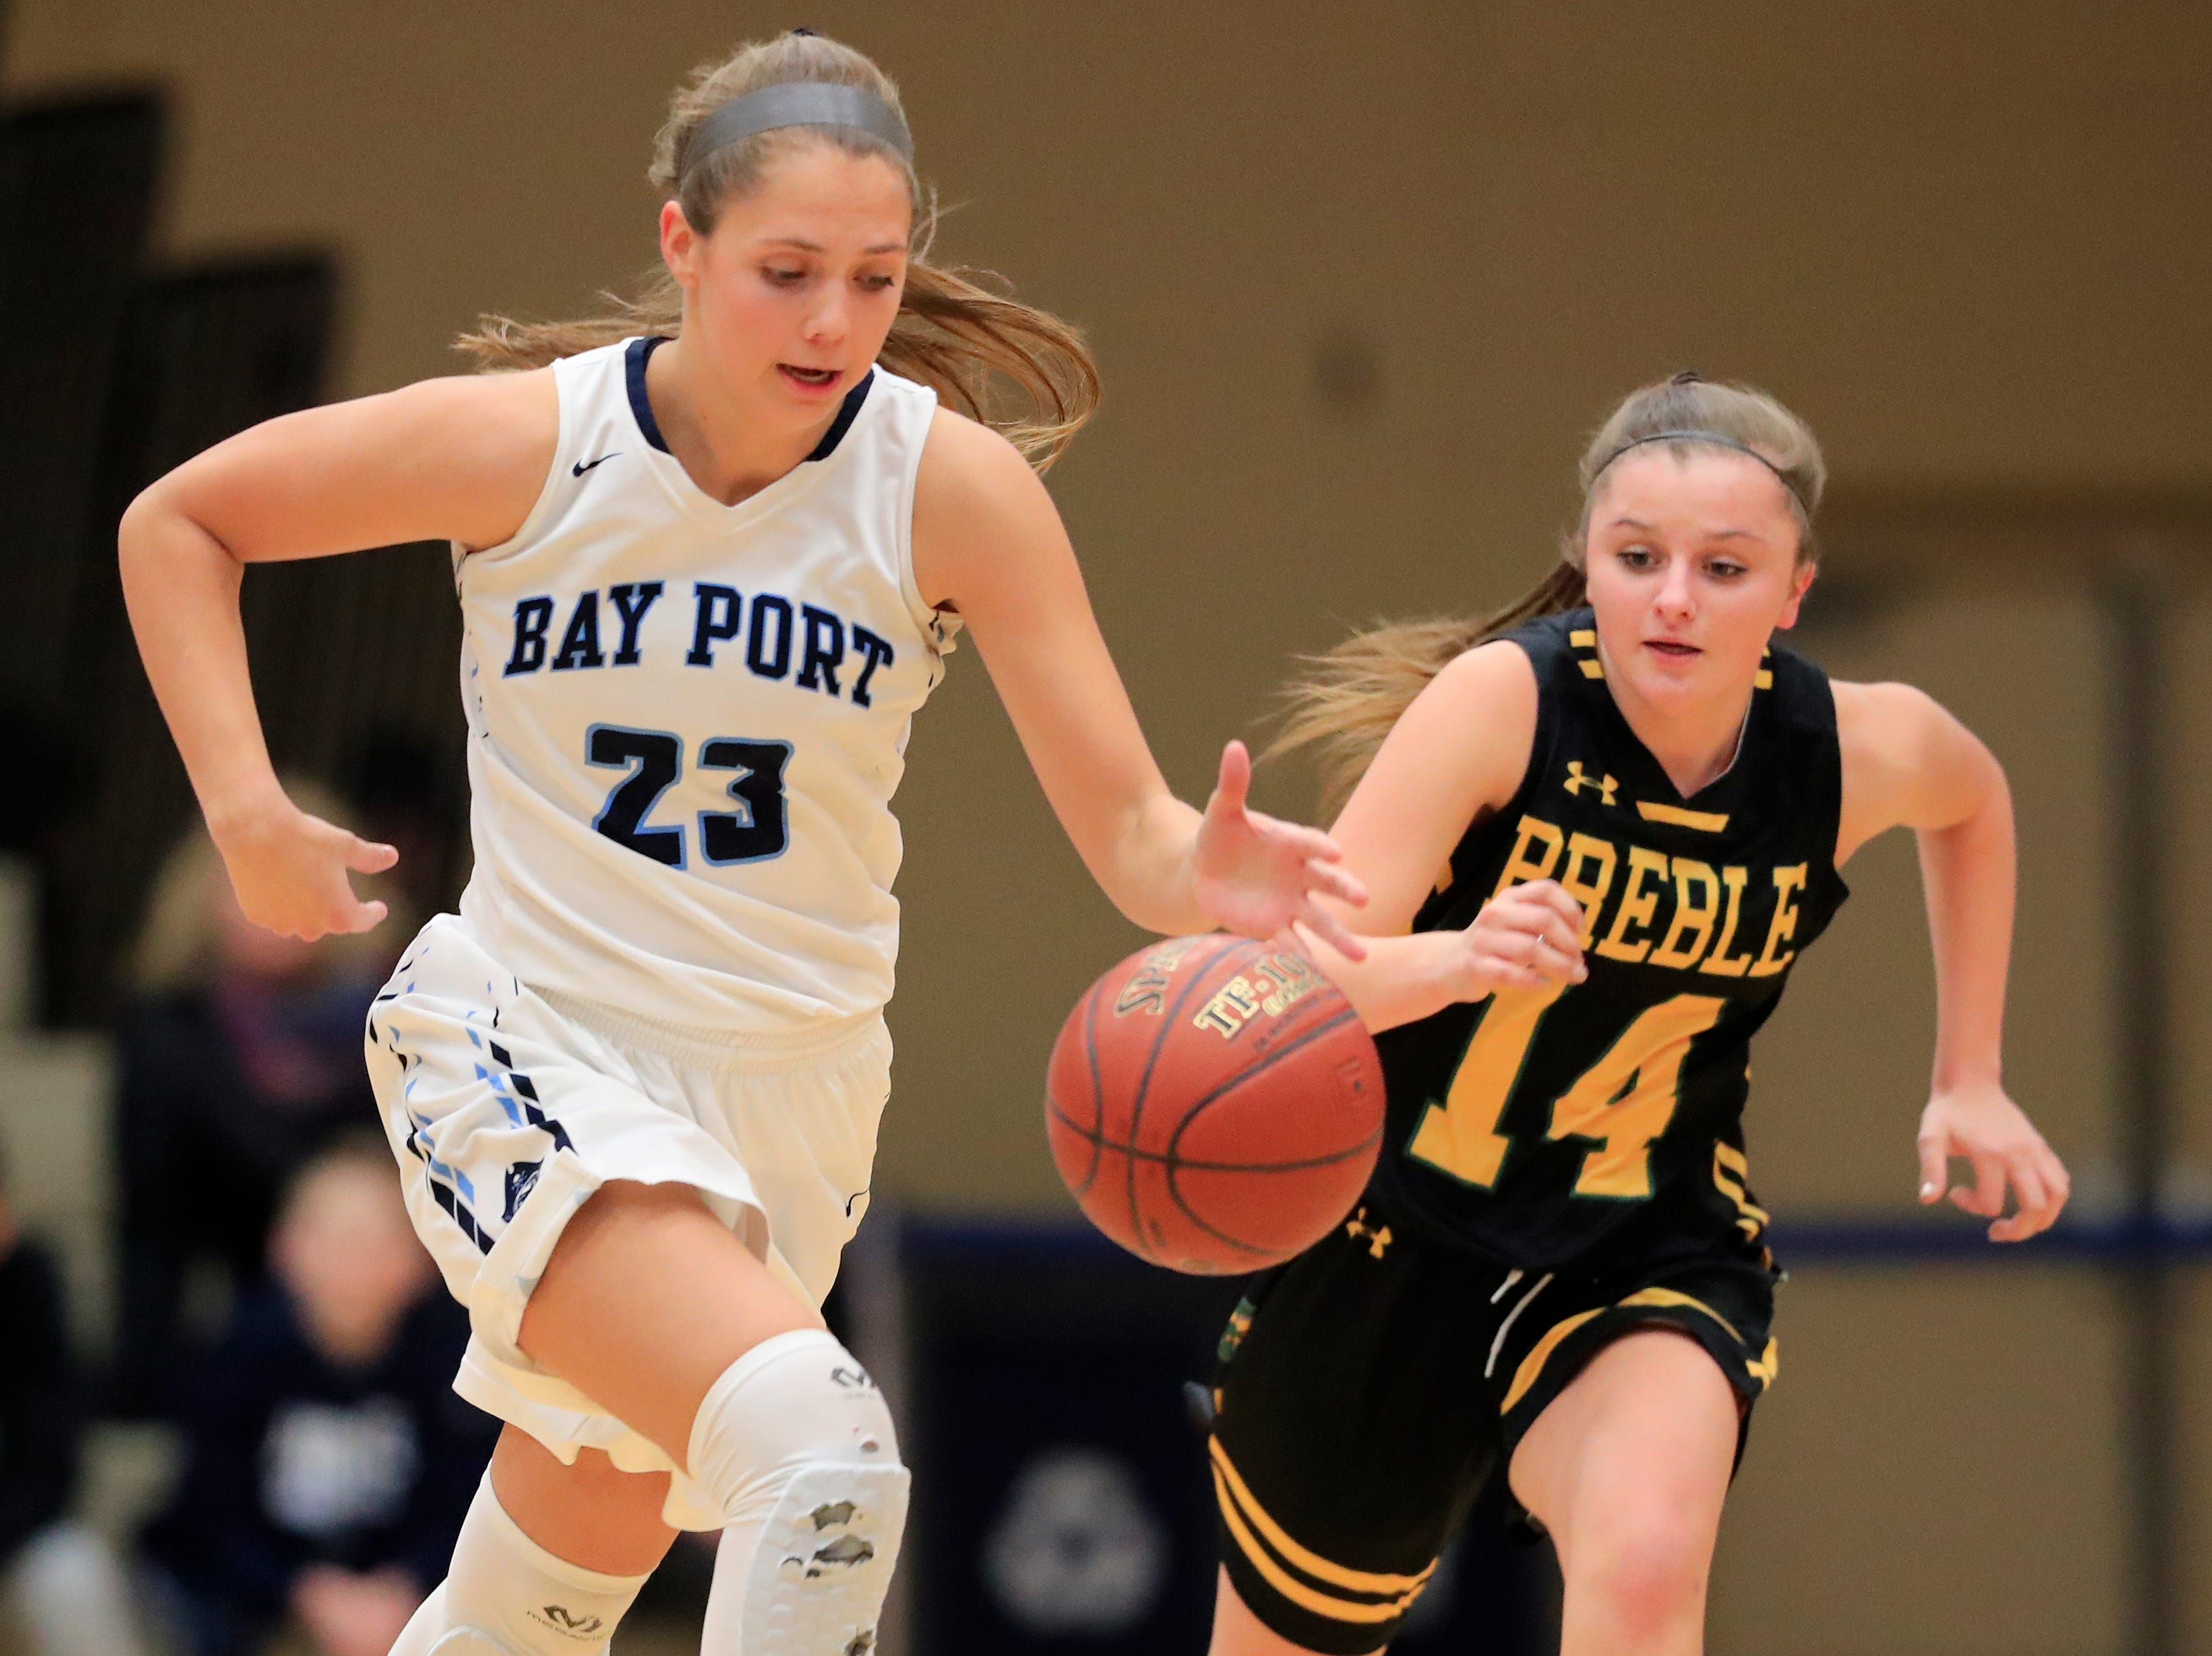 Bay Port's Emma Nagel (23) gets a steal against Green Bay Preble's Taylor Sleger (14) in a FRCC girls basketball game at Bay Port high school on Friday, February 8, 2019 in Suamico, Wis.